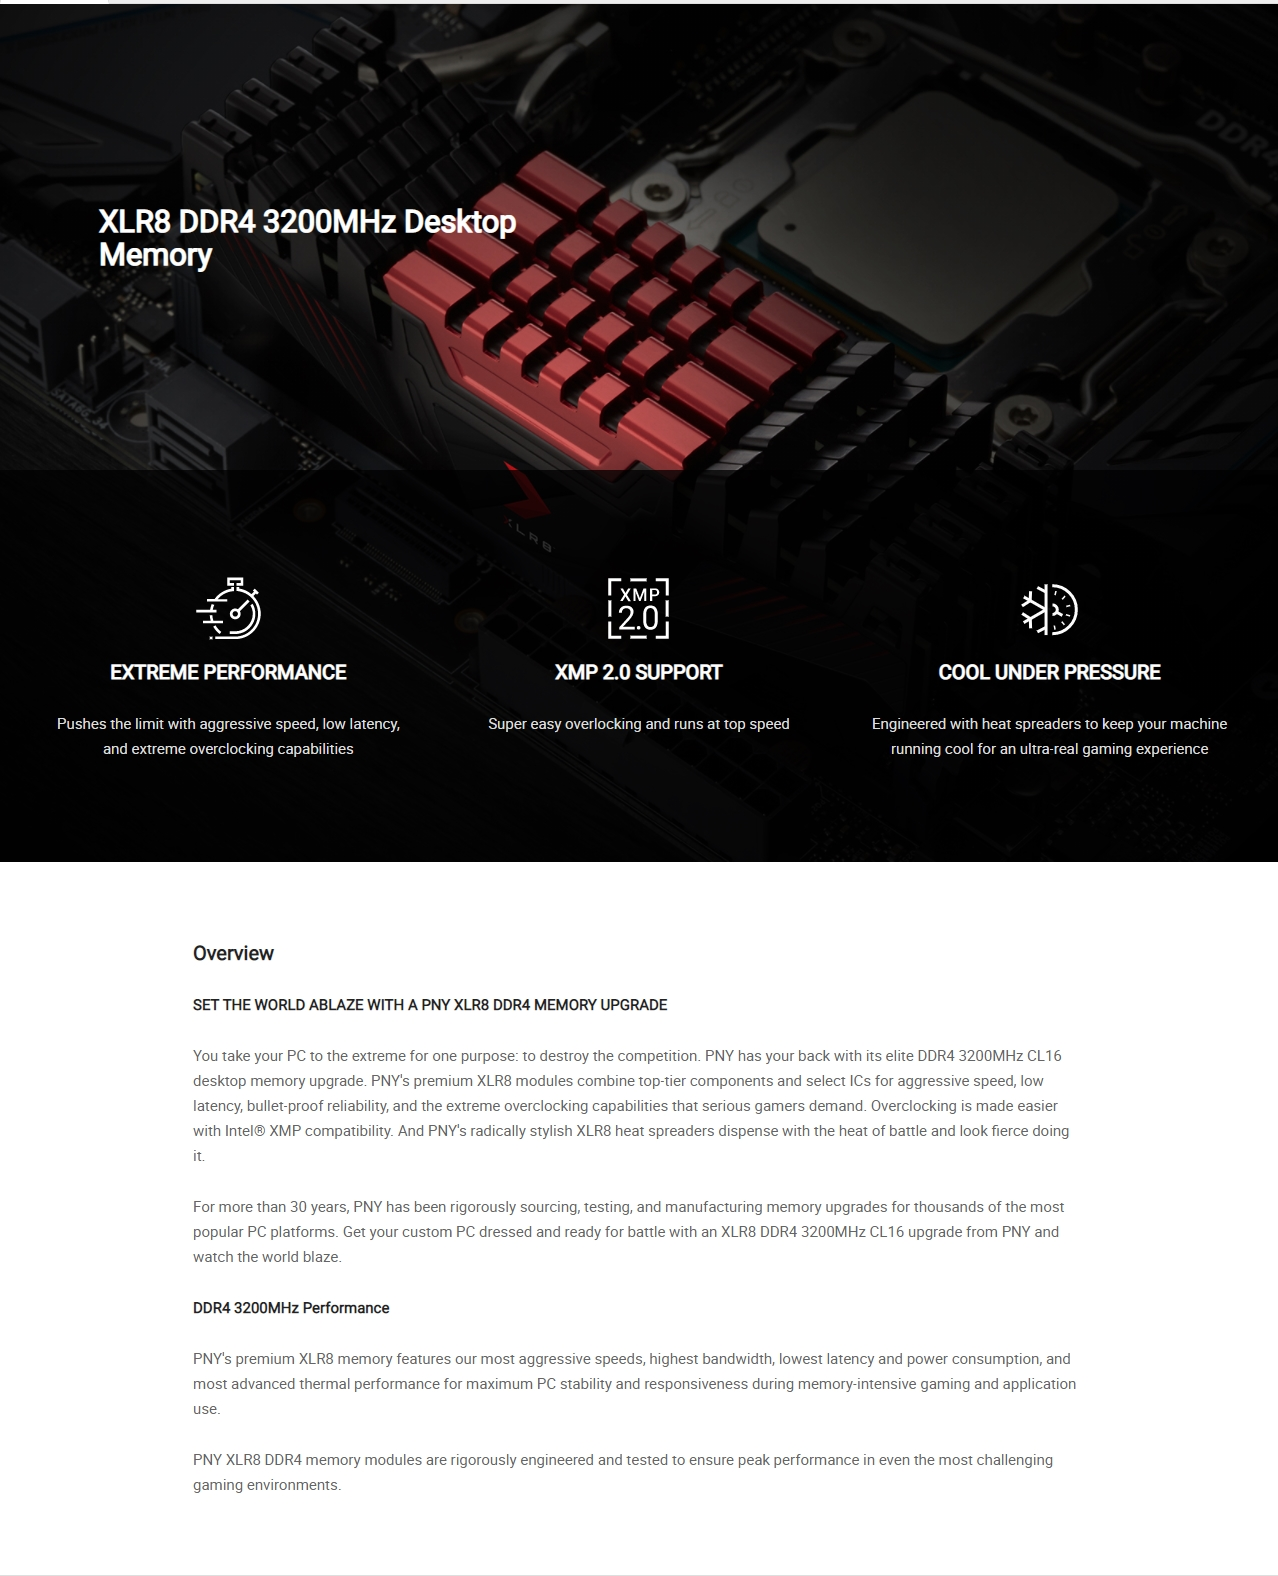 A large marketing image providing additional information about the product PNY XLR8 32GB (2x16GB) DDR4 C16 3200MHz - Additional alt info not provided